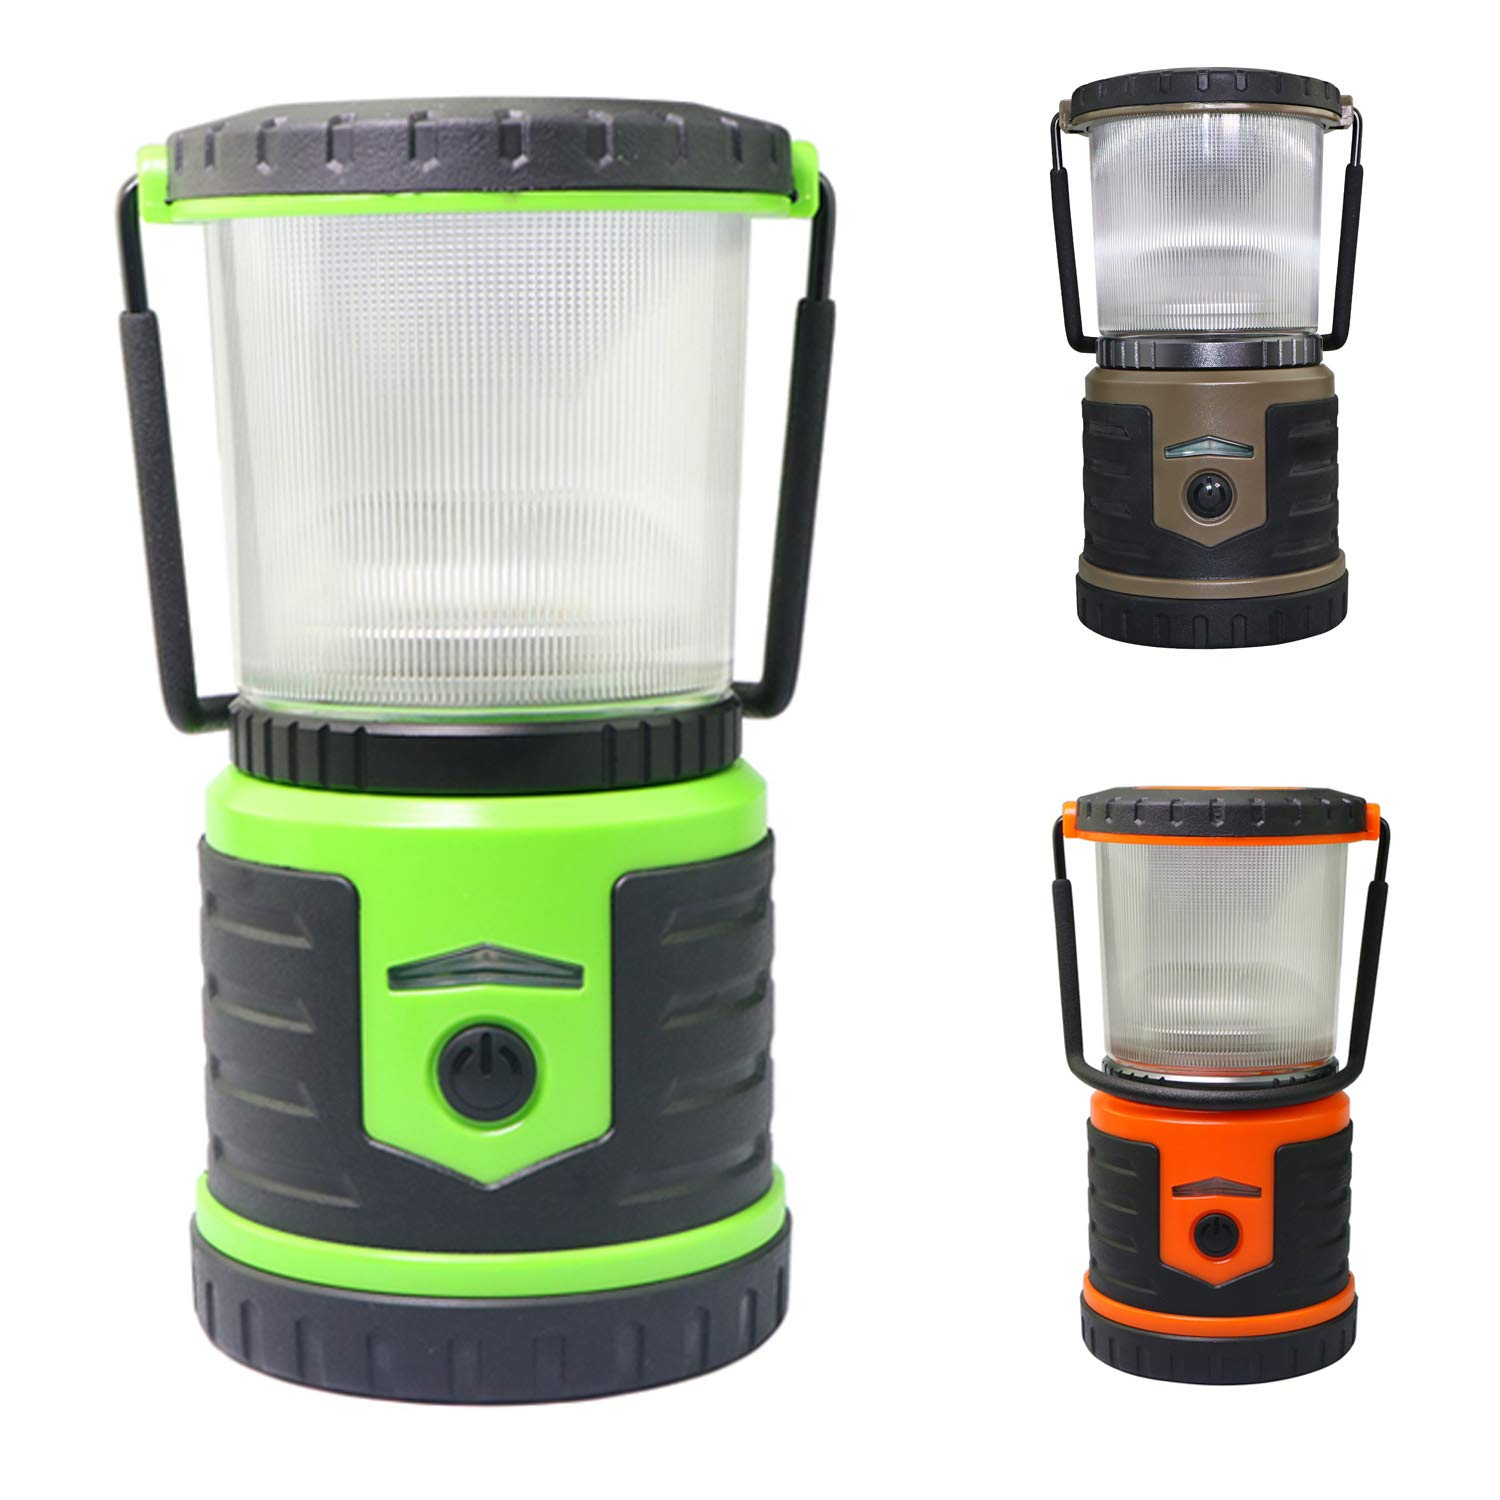 LED Lantern, Water resistant LED Camping Lantern Flashlight, Last 600 Hours D Cell Battery Powered Lantern for Home, Emergency, Outdoor, Roadside Use, Hurricanes, Outages, Storm (Green)